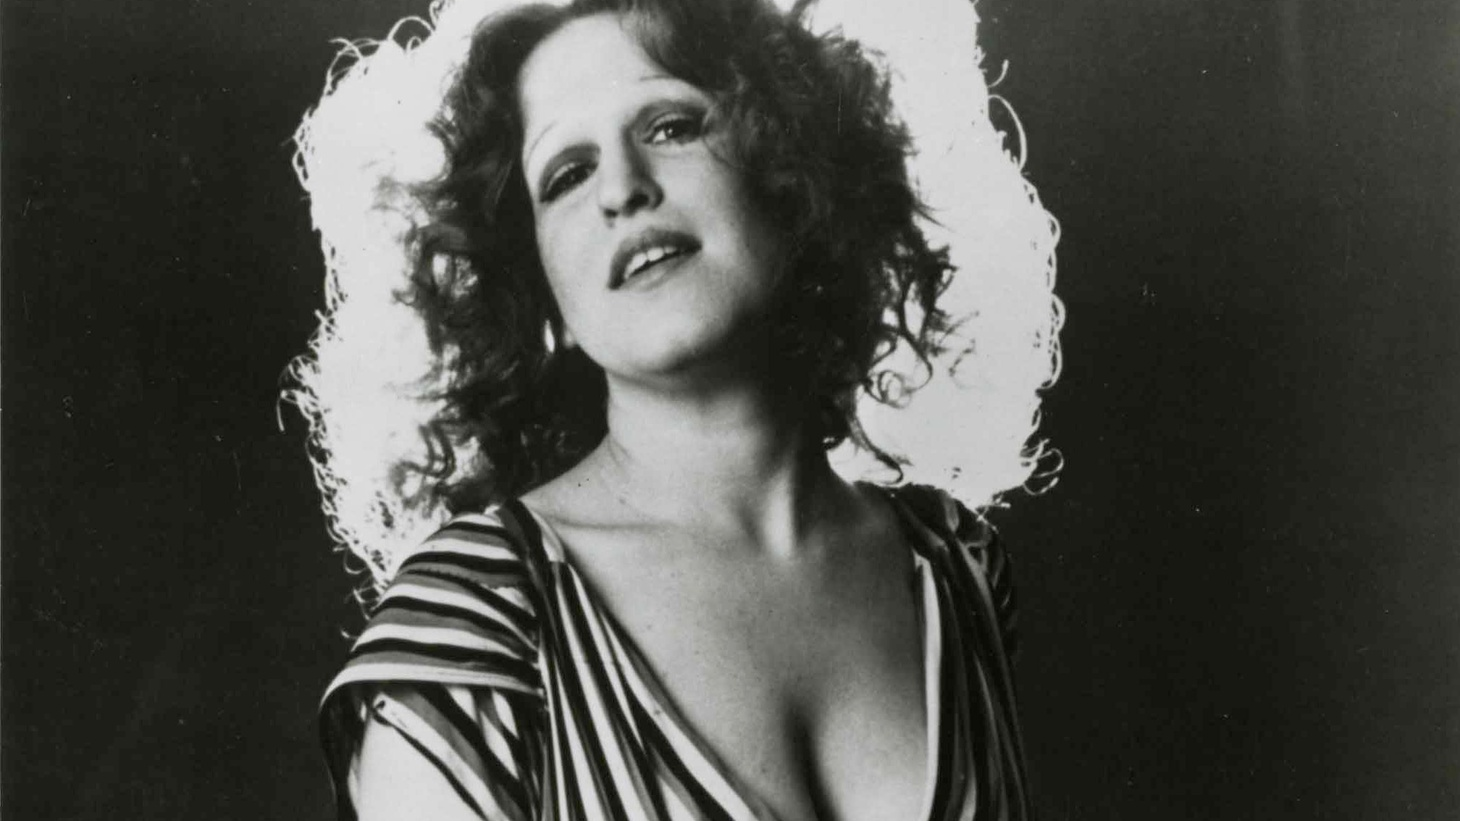 The Divine Miss M is back! The iconic 1972 debut album that launched Bette Midler's career will be re-released in October alongside a bonus disc of singles, outtakes and demos.